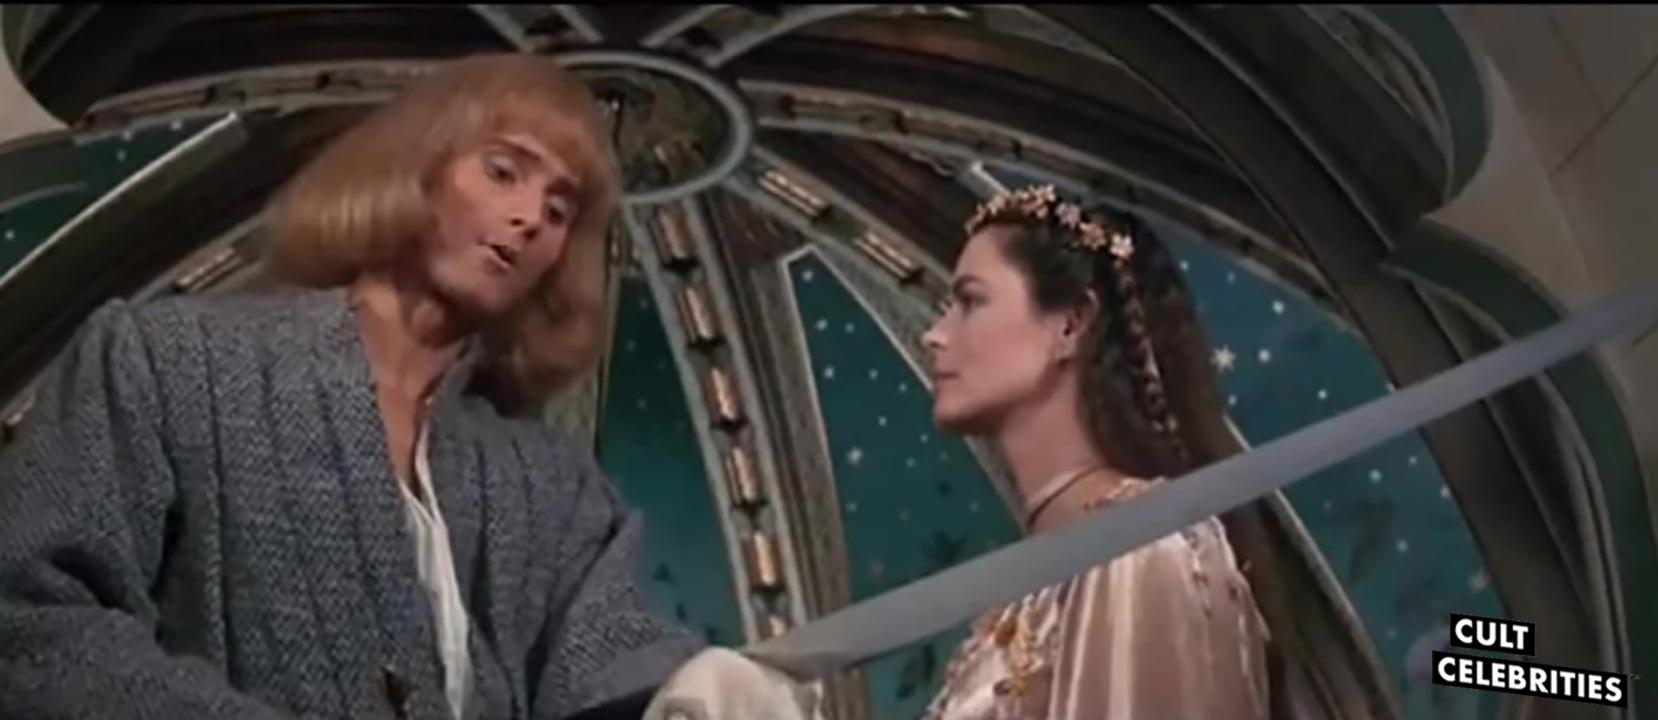 Cyrielle Clair and Miles O'Keeffe in Sword of the Valiant (1984)